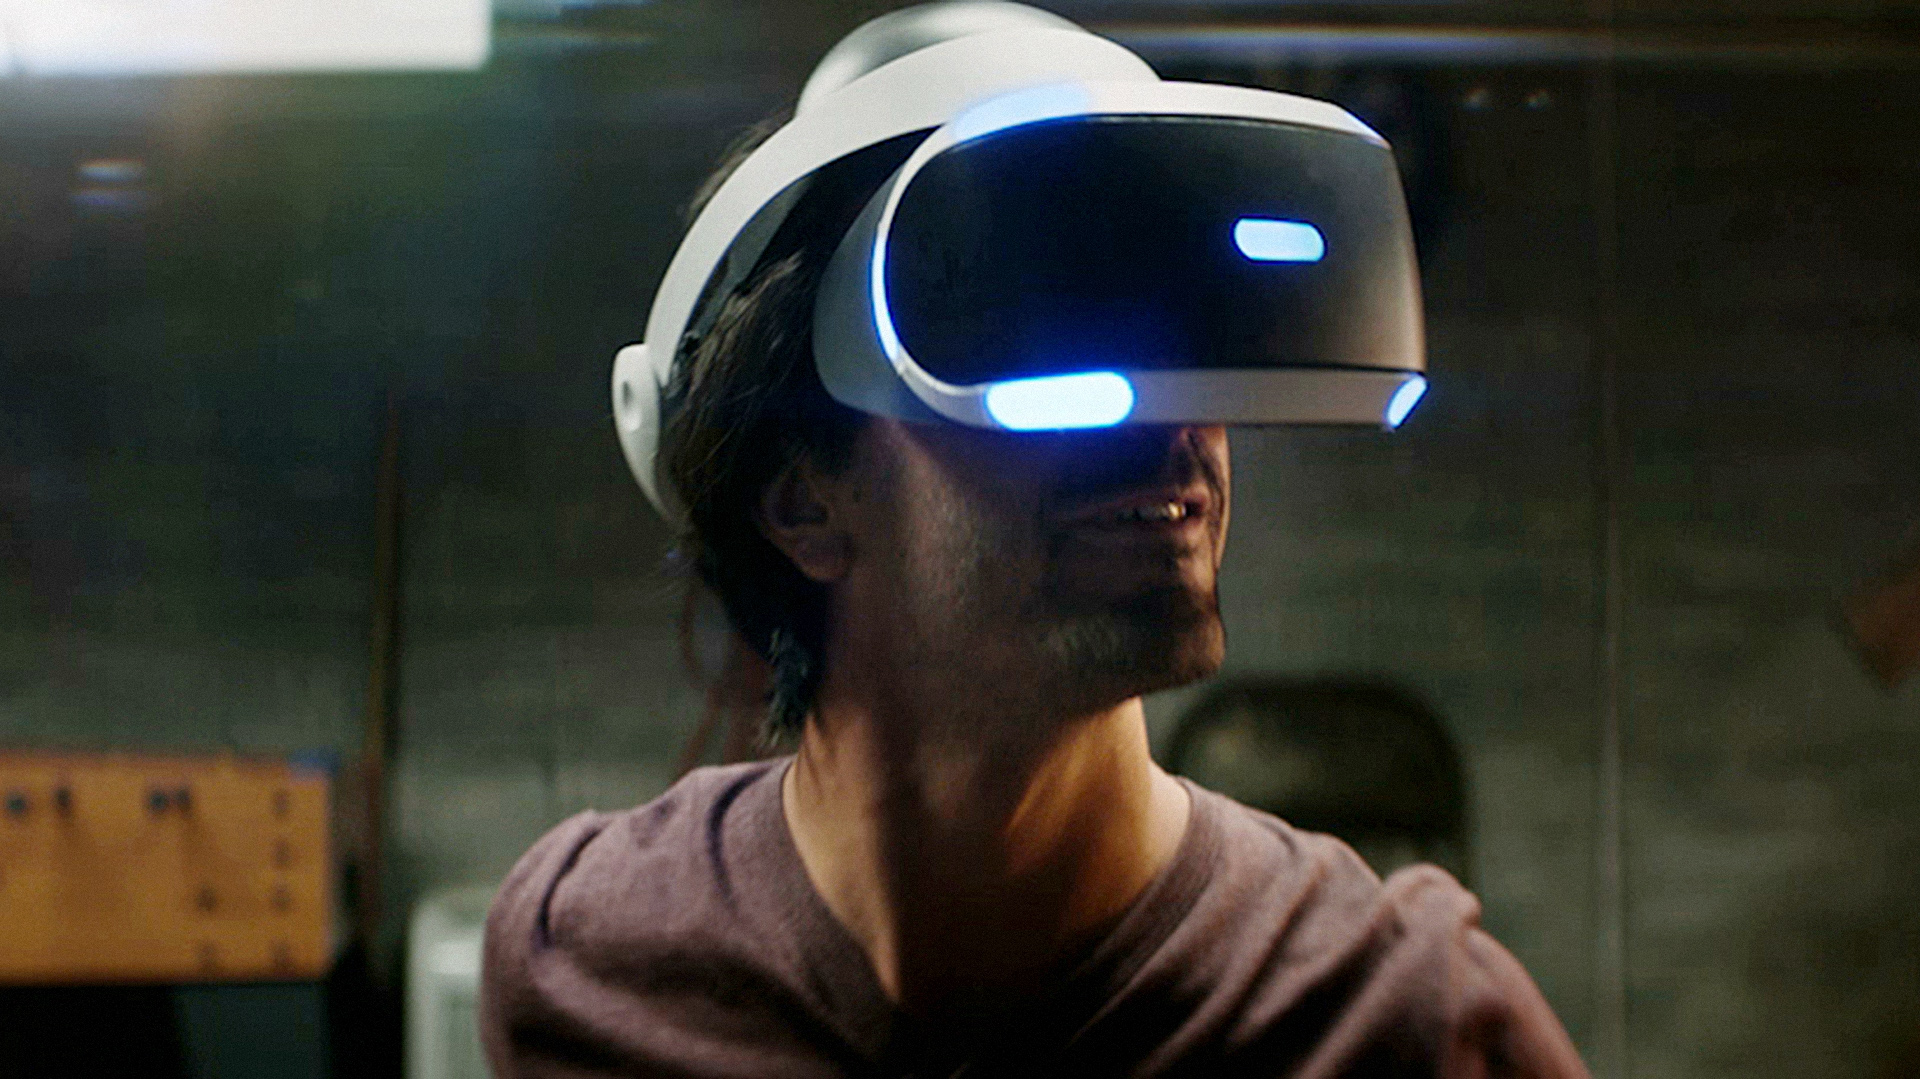 Playstation Knows It Can't Market VR The Same Way As Regular Video Games